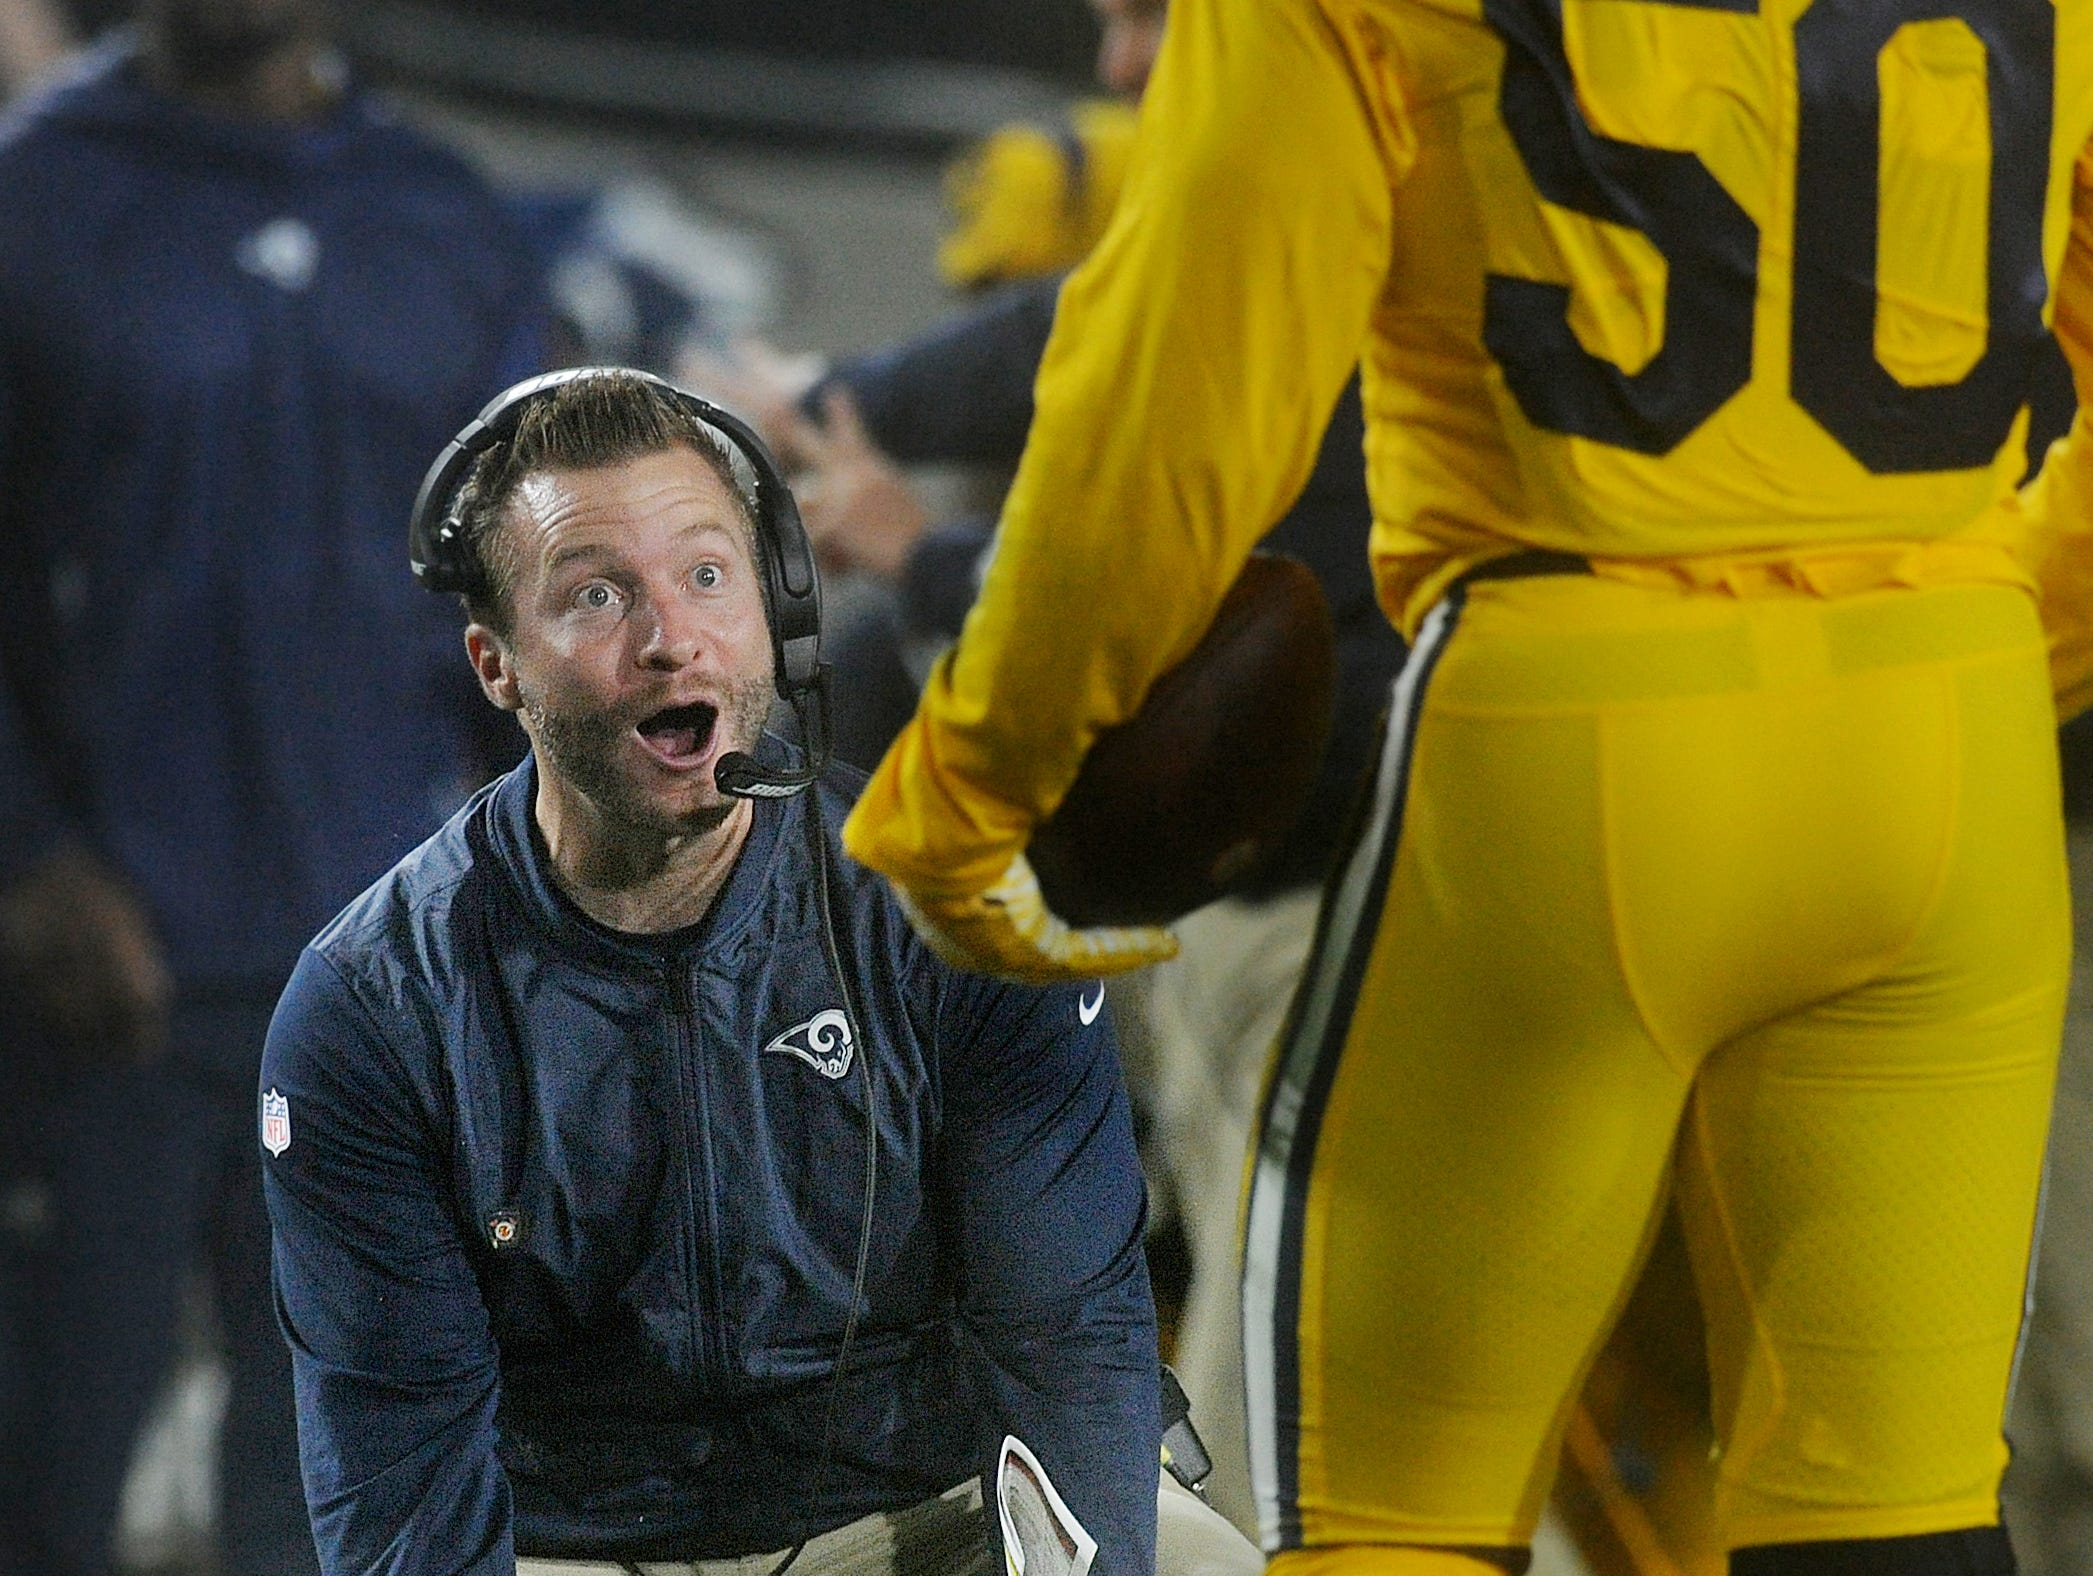 Coach Sean McVay reacts after Samson Ebukam (50) scores a touchdown on a fumble recovery in the 2nd quarter against the Chiefs on Monday night. He later intercepted a pass and scored his second TD of the game. The Rams won by a score of 54-51. The combined 105 points is the third-highest scoring NFL game in history and it marked the only time that two teams ever scored more the 50 points in the same game.